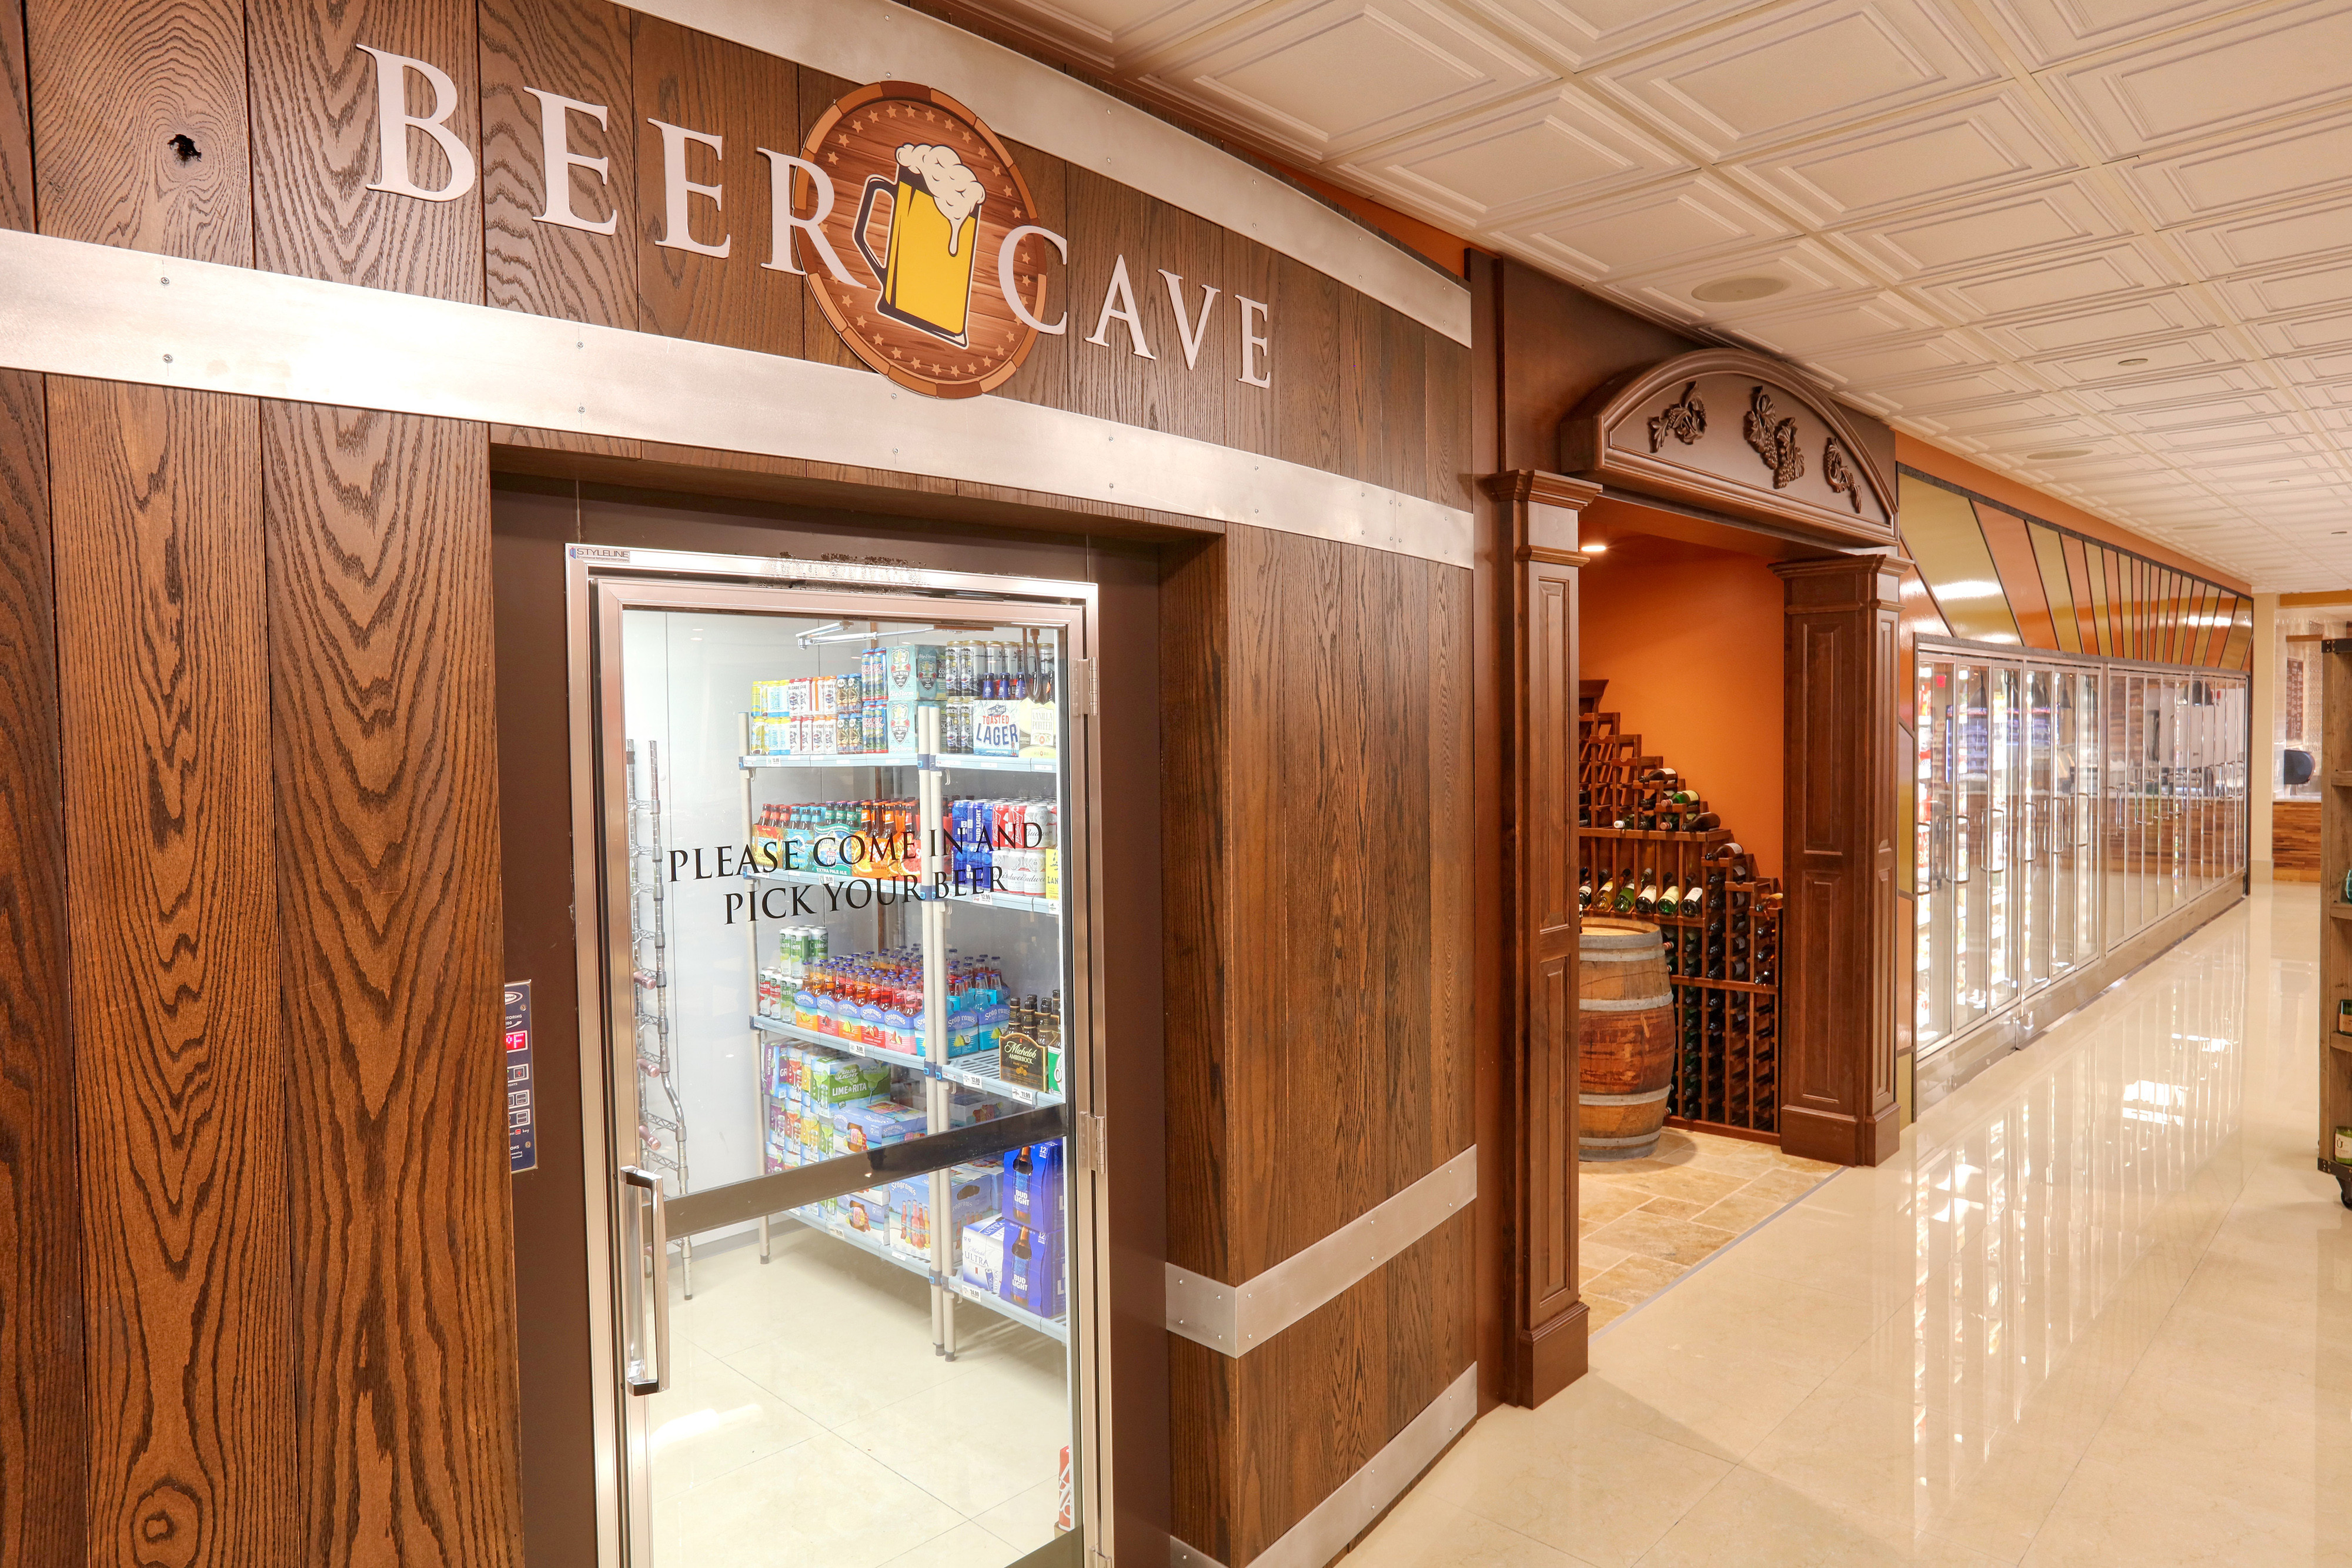 Marketplace Deli Beer Cave at hotel in Orlando, FL |  Westgate Lakes Resort & Spa | Westgate Resorts